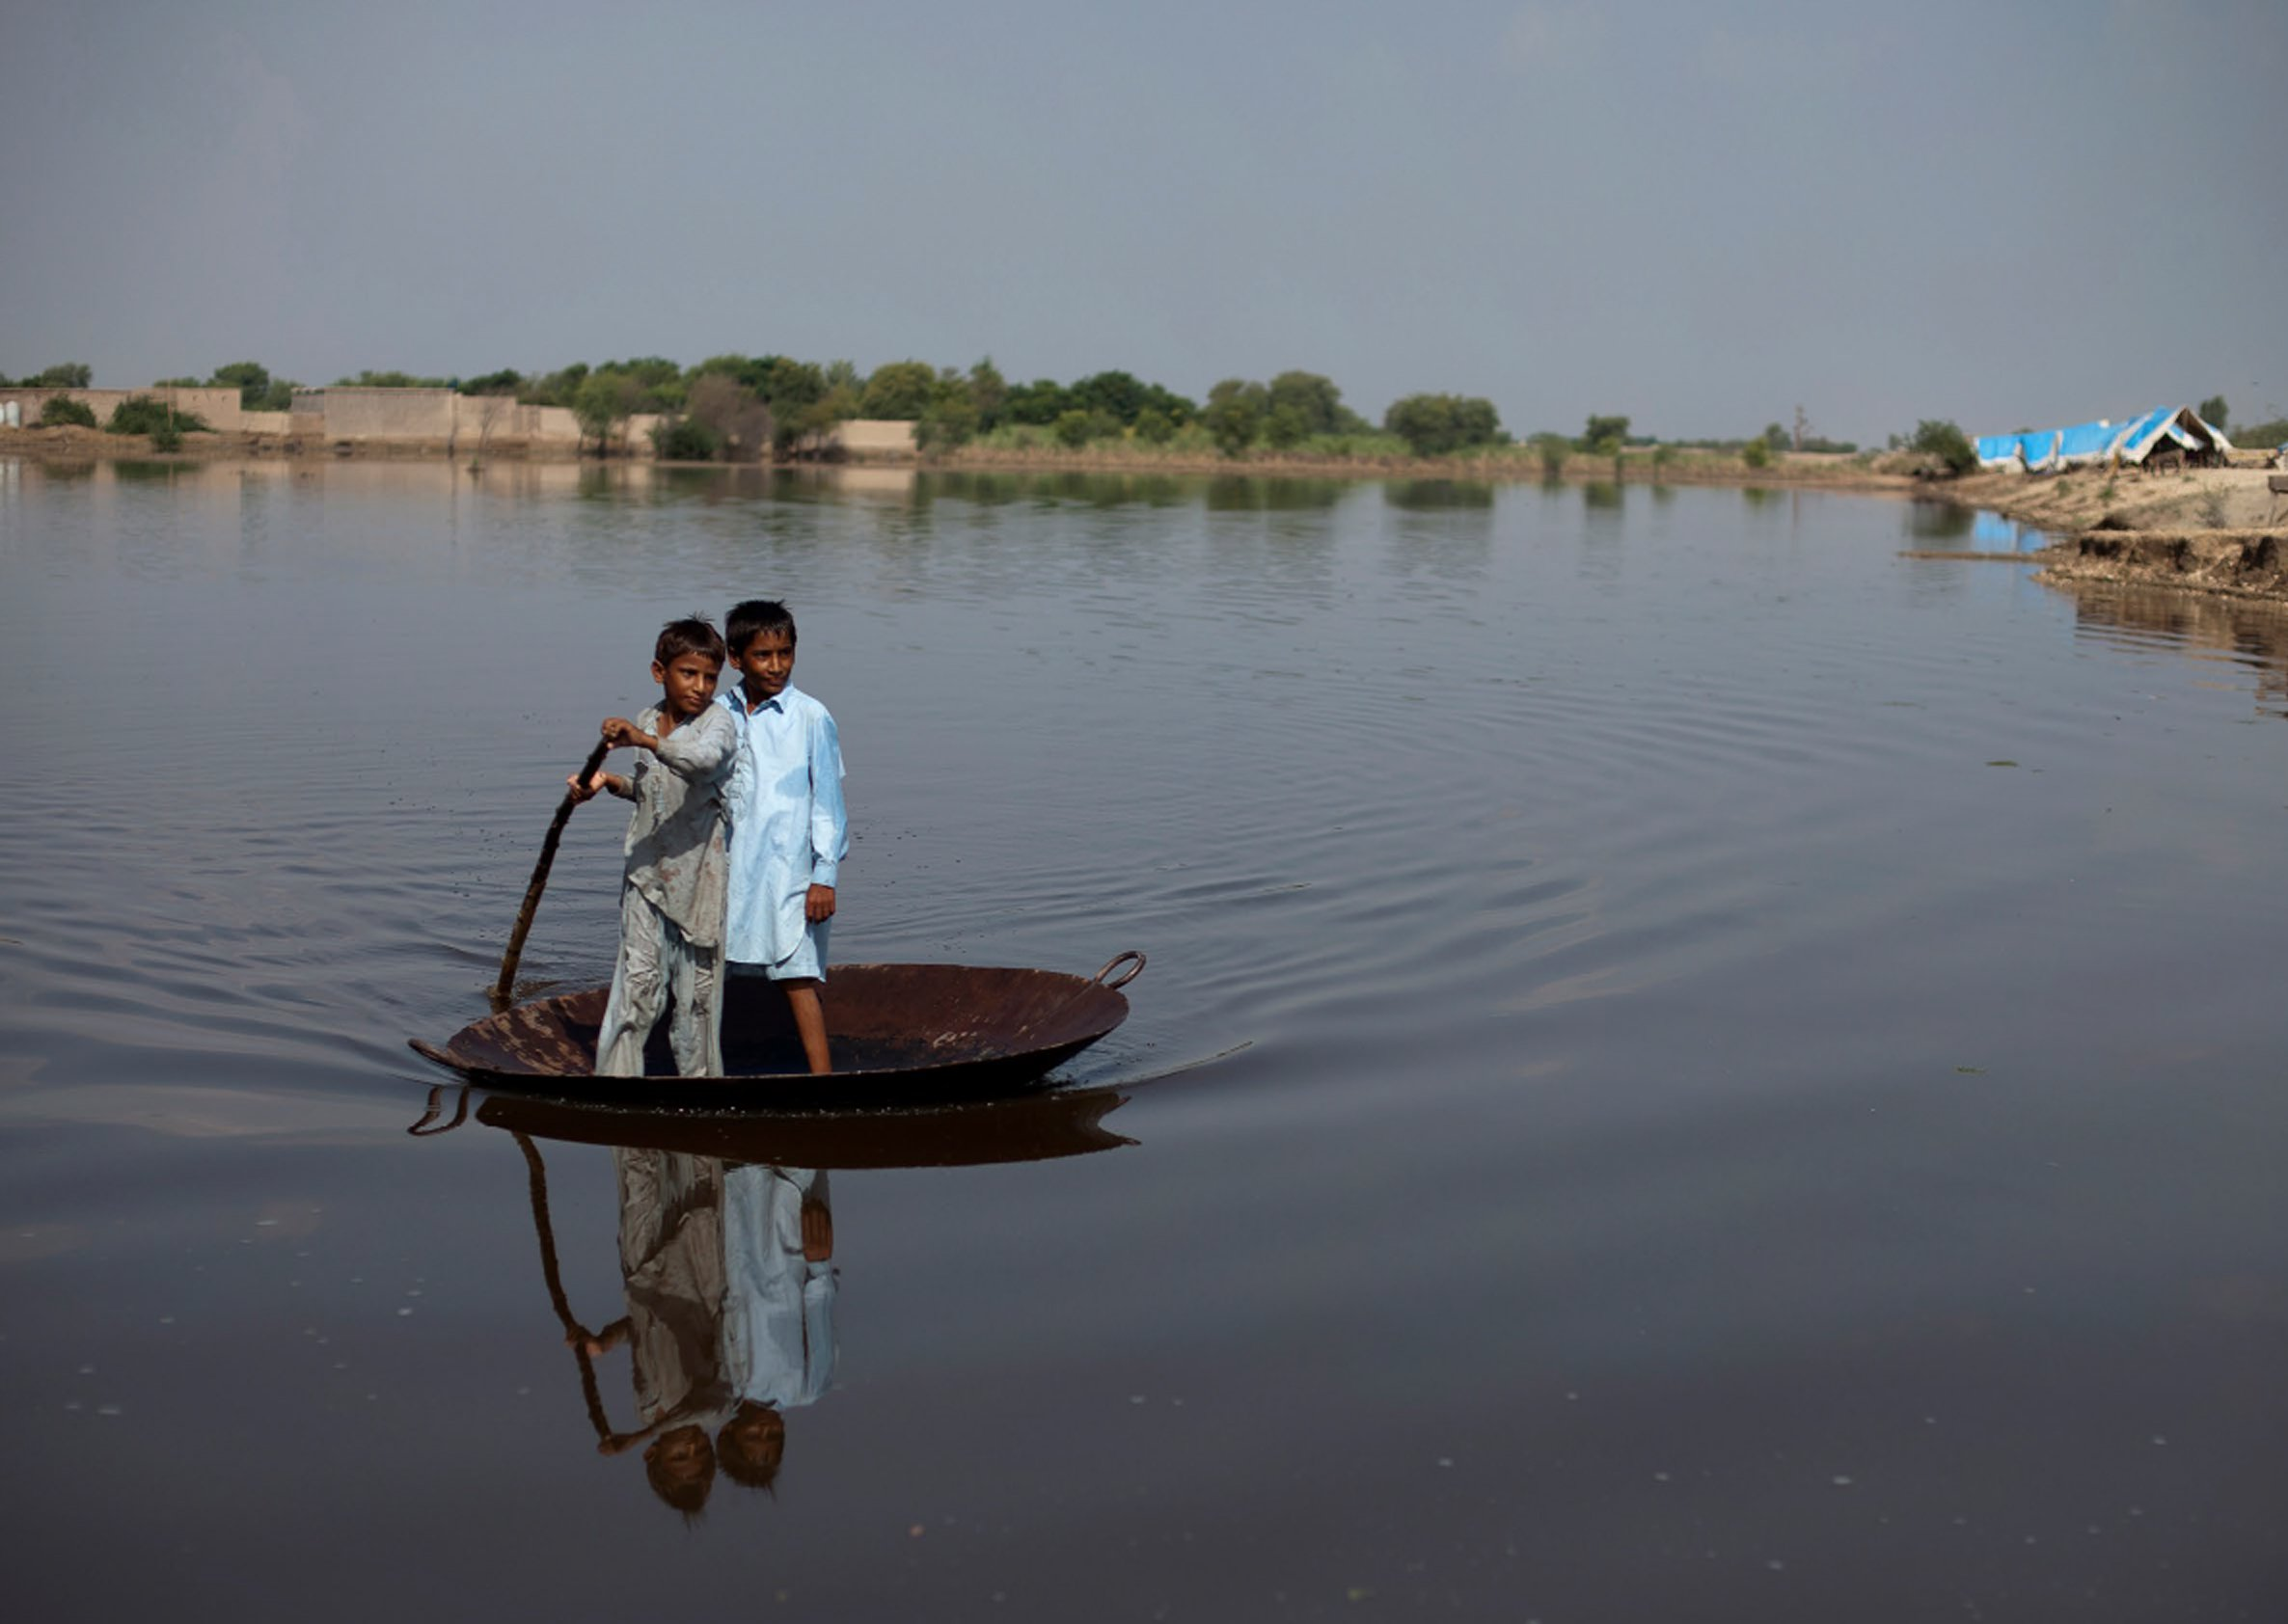 Boys use a large steel pot as a raft to cross an expanse of flood water in Pakistan in 2011